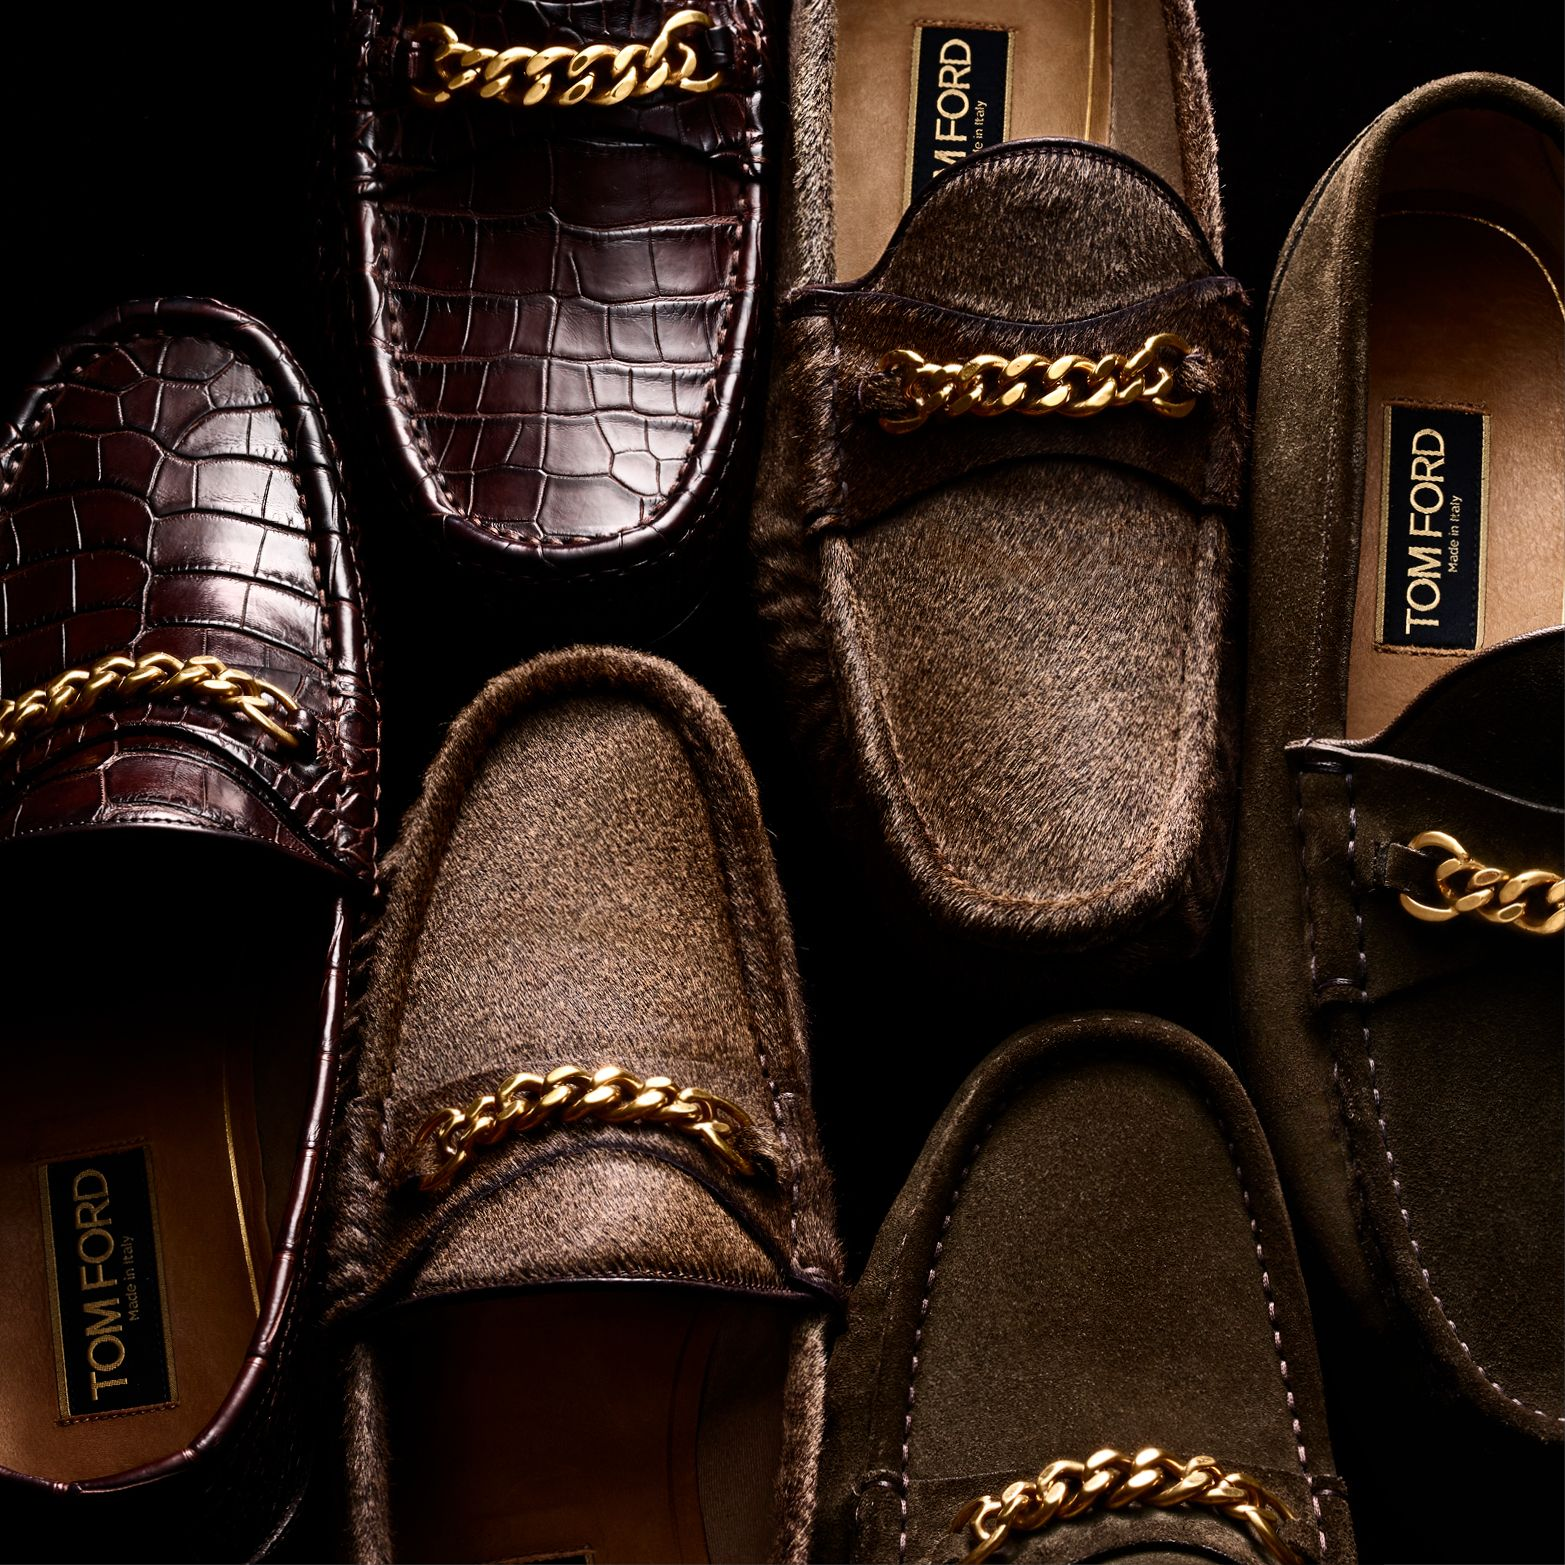 41f55e4ccab52 Iconic York Chain Loafers - available in various colors and materials.  #TOMFORD